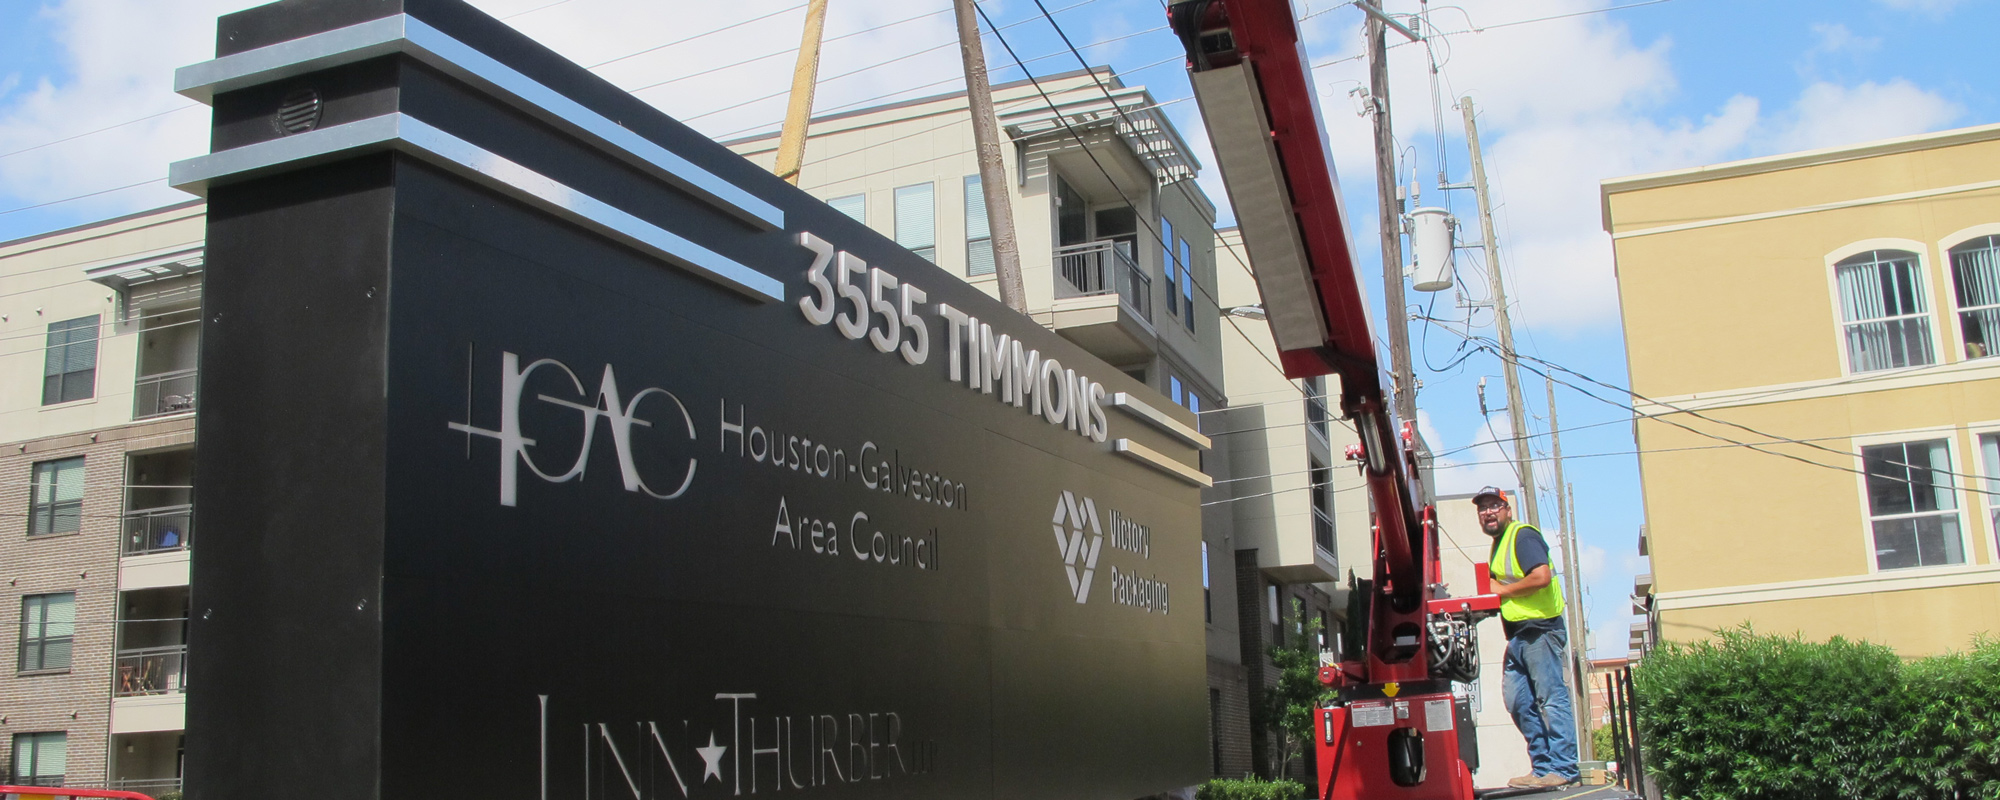 Installer using crane truck to install a monument sign